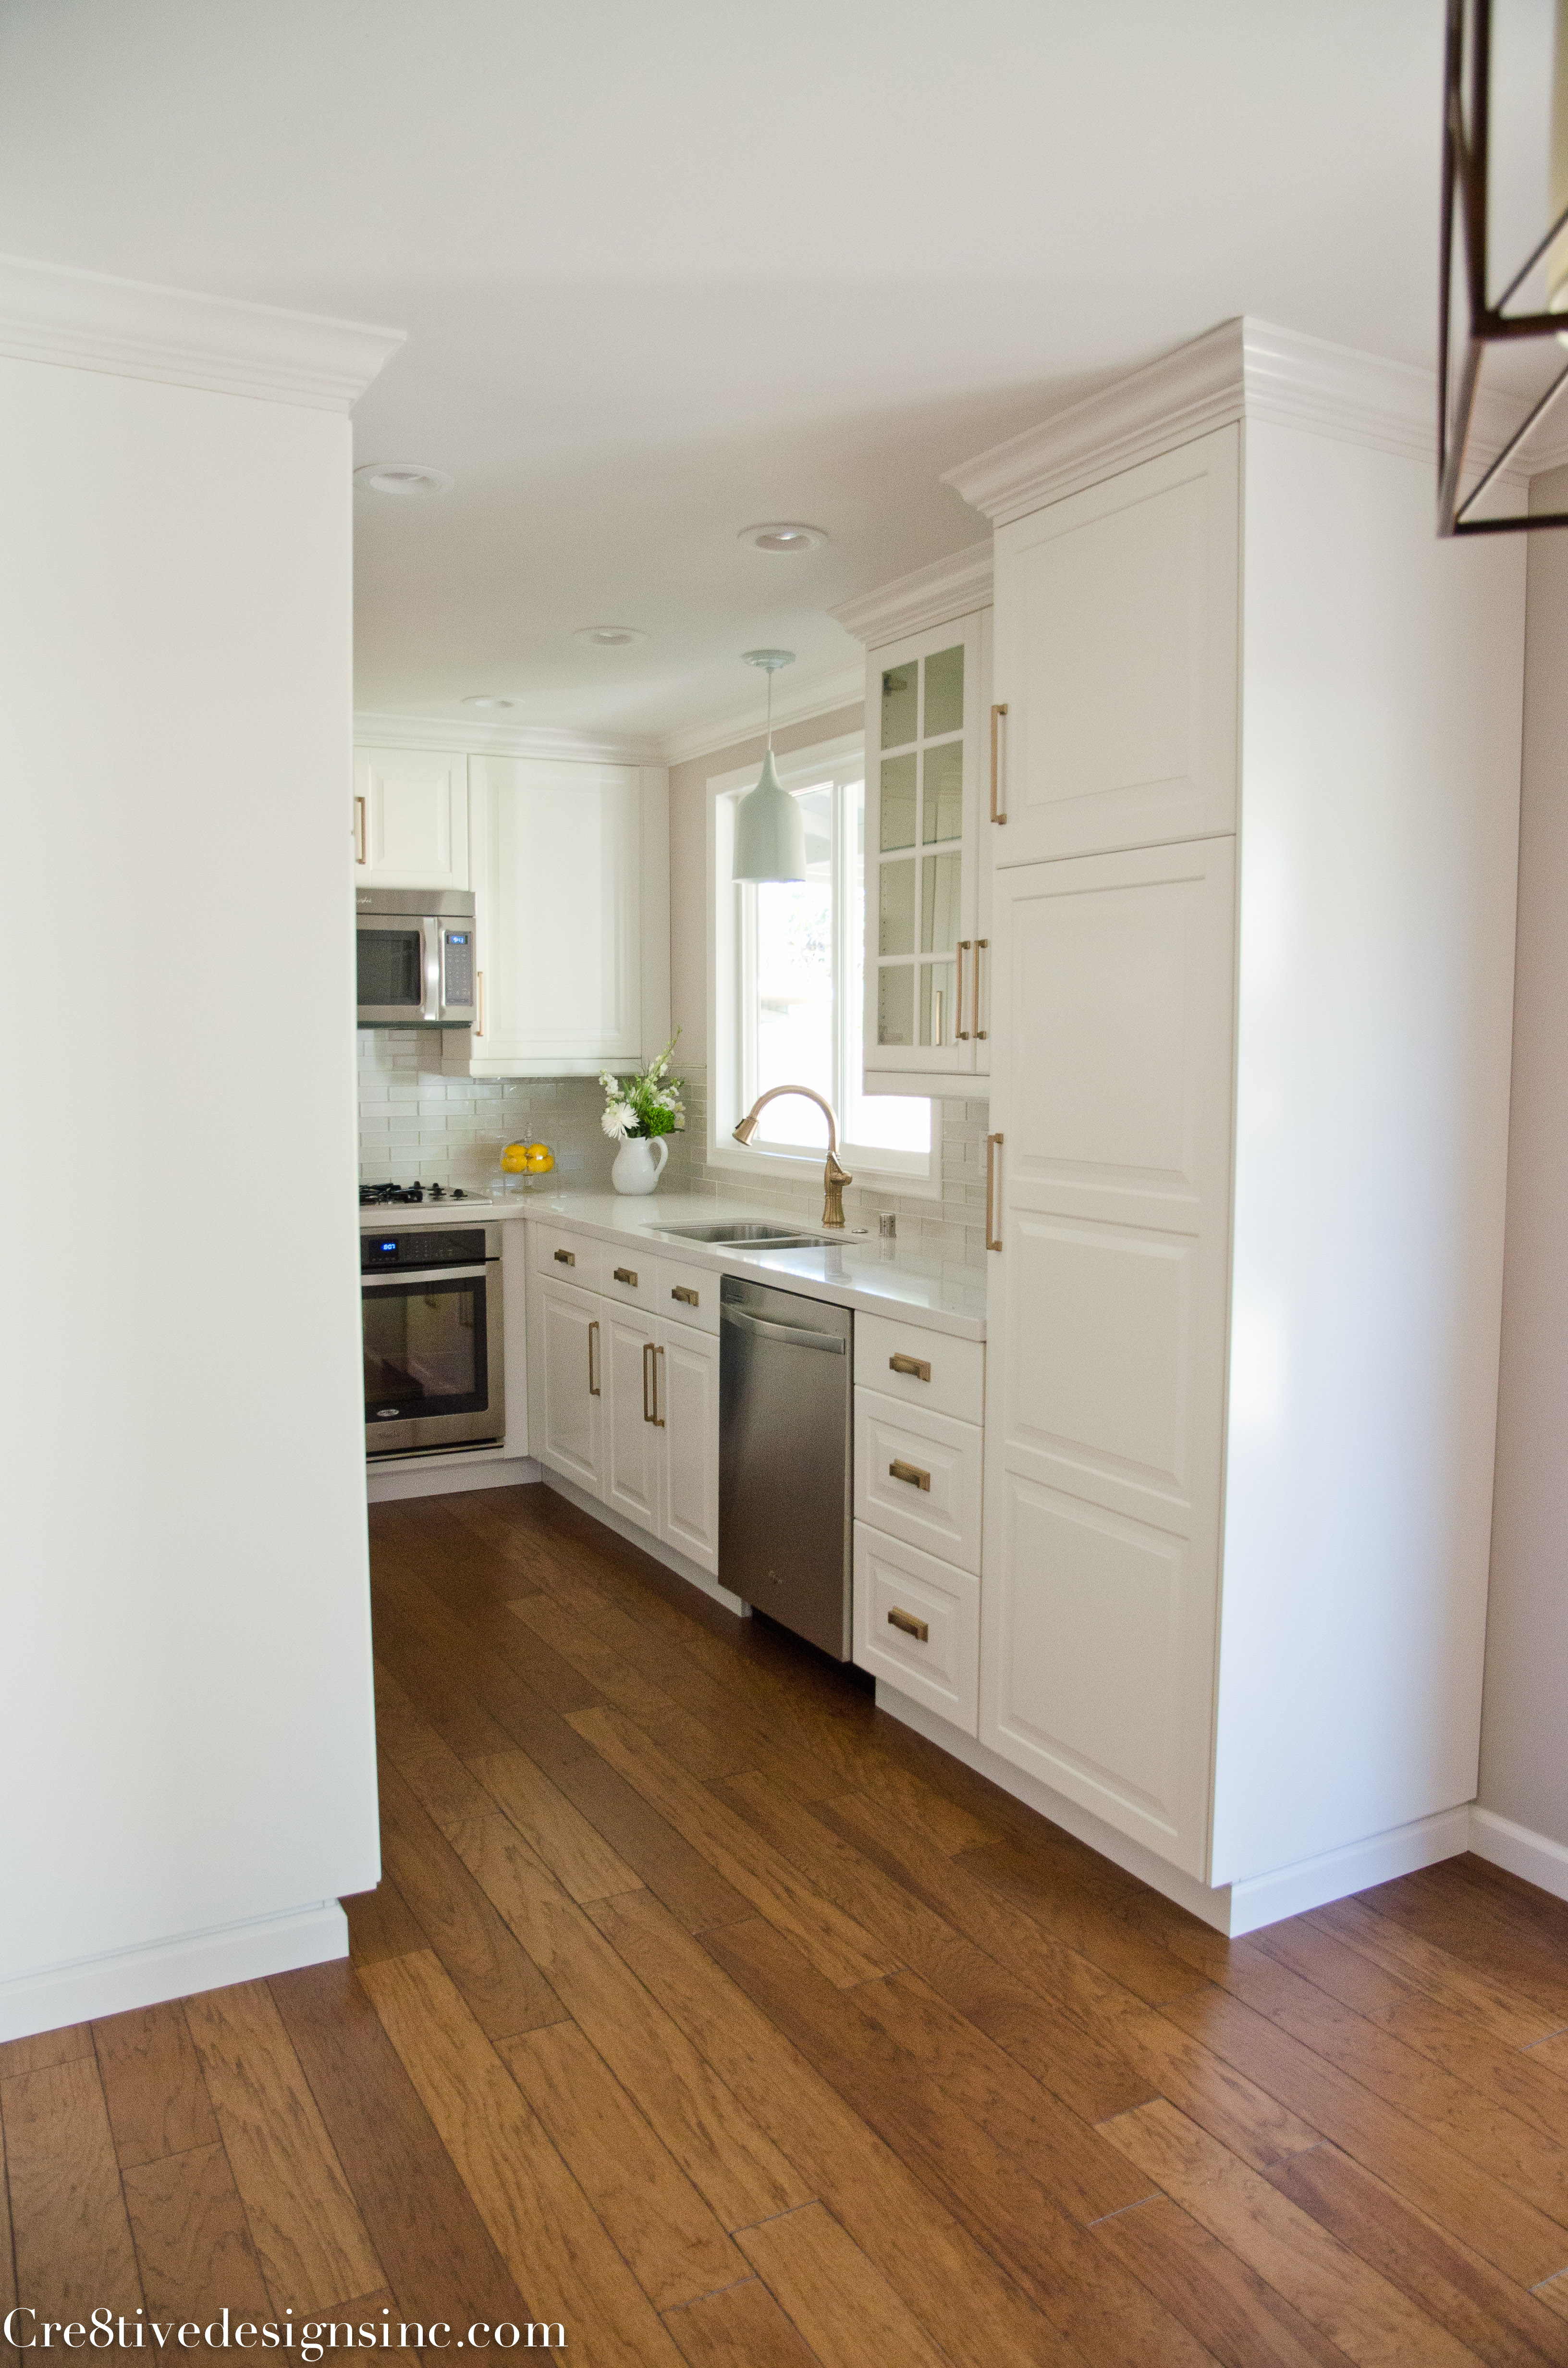 The Ikea kitchen completed  Cre8tive Designs Inc